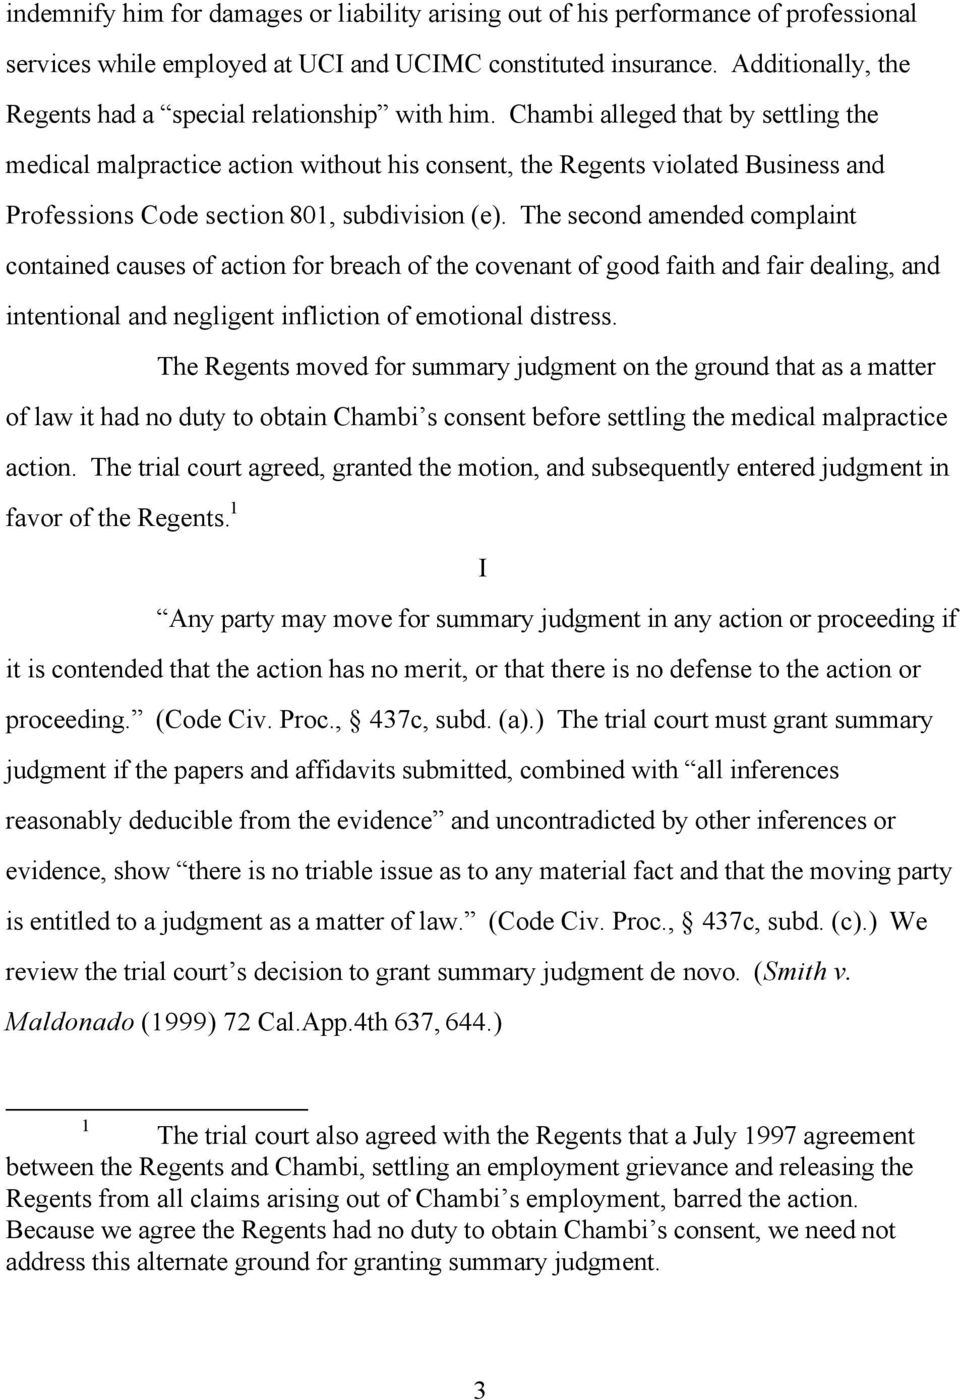 Chambi alleged that by settling the medical malpractice action without his consent, the Regents violated Business and Professions Code section 801, subdivision (e).